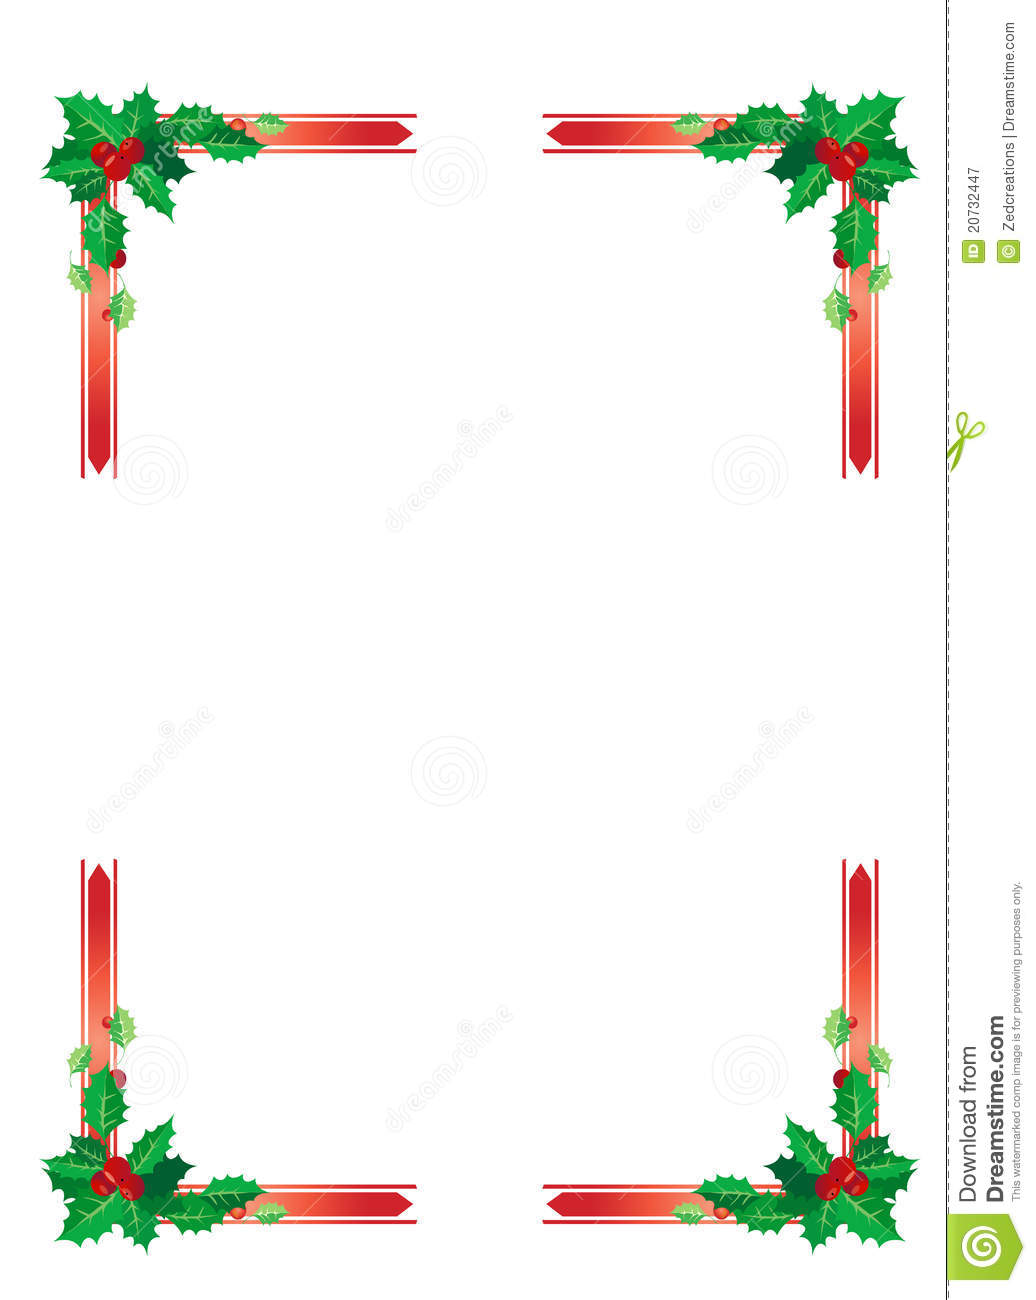 Christmas borders free download - ClipartFest jpg black and white download